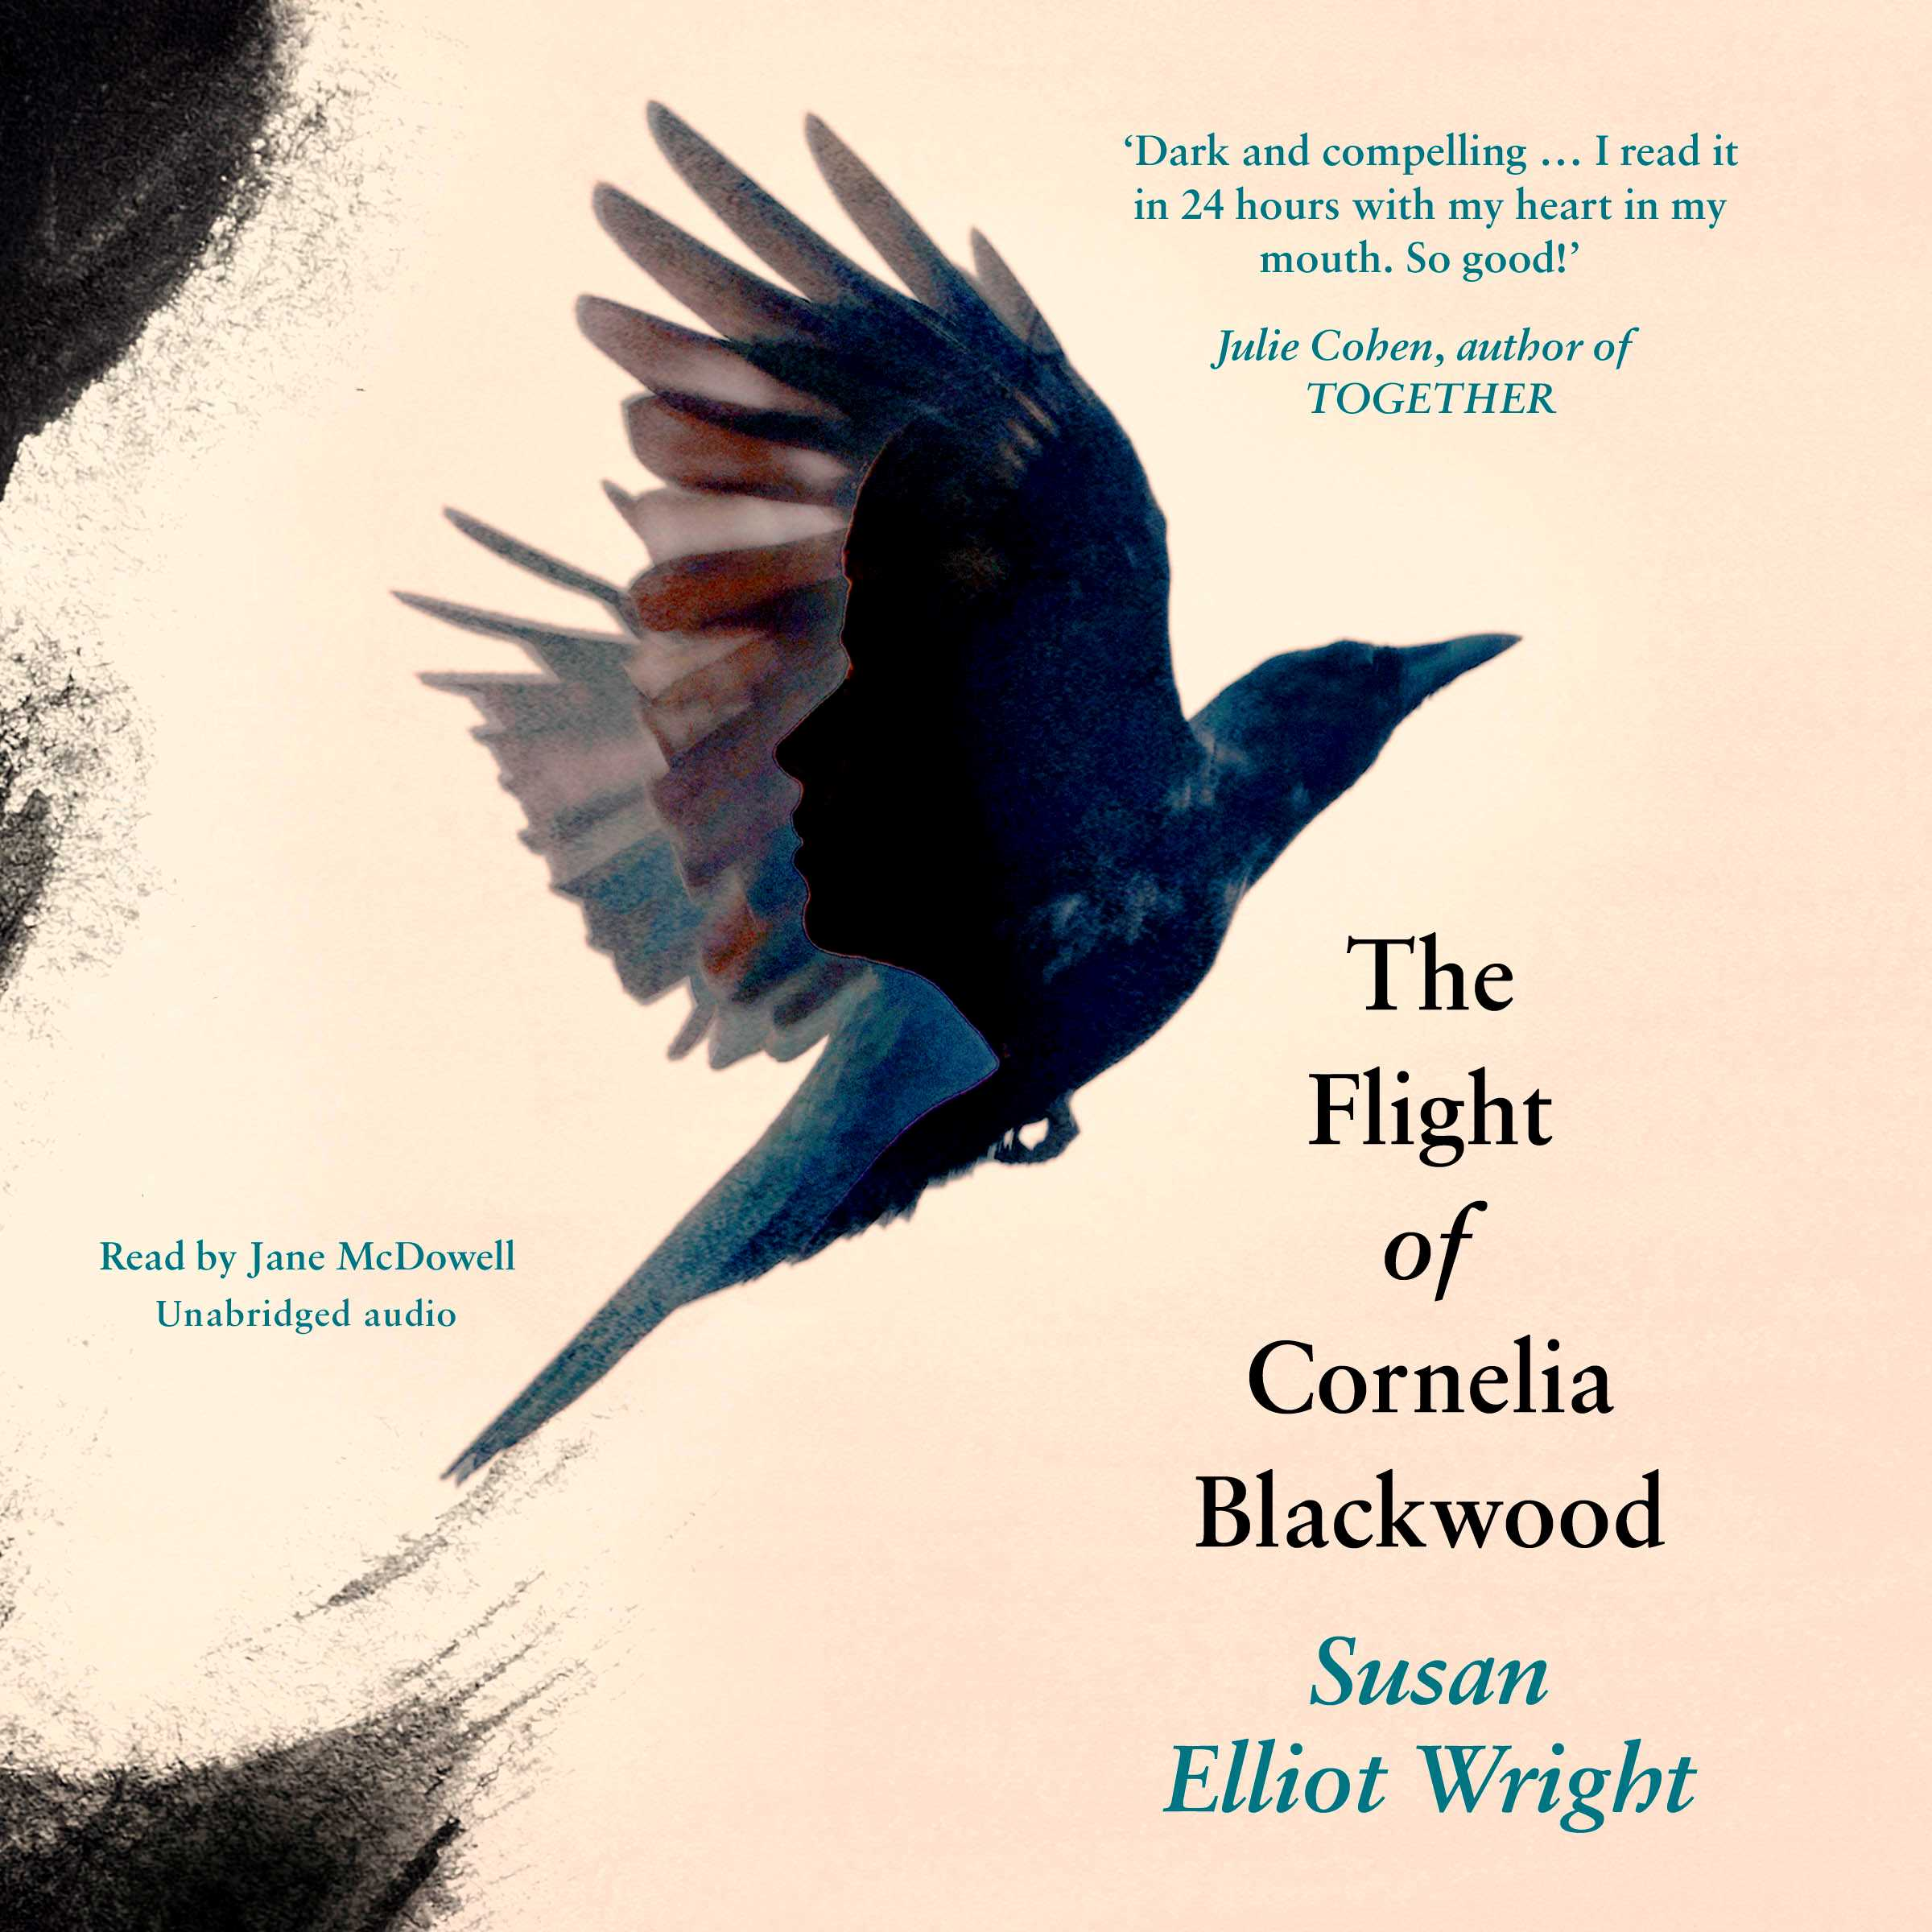 The flight of cornelia blackwood 9781471180842 hr